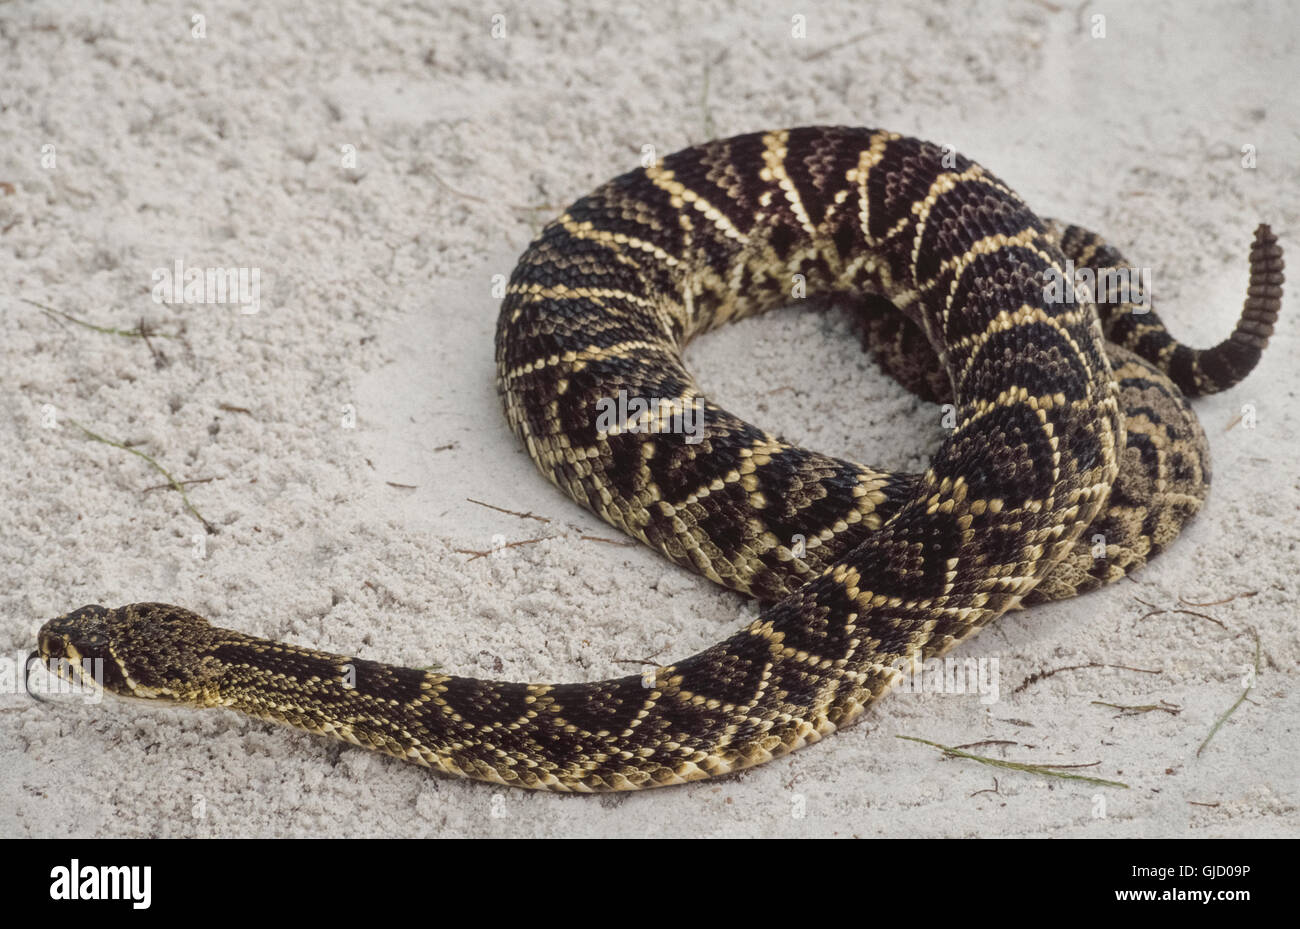 A venomous Eastern diamondback rattlesnake (Crotalus adamanteus) slithering across the sand flicks out its tongue Stock Photo